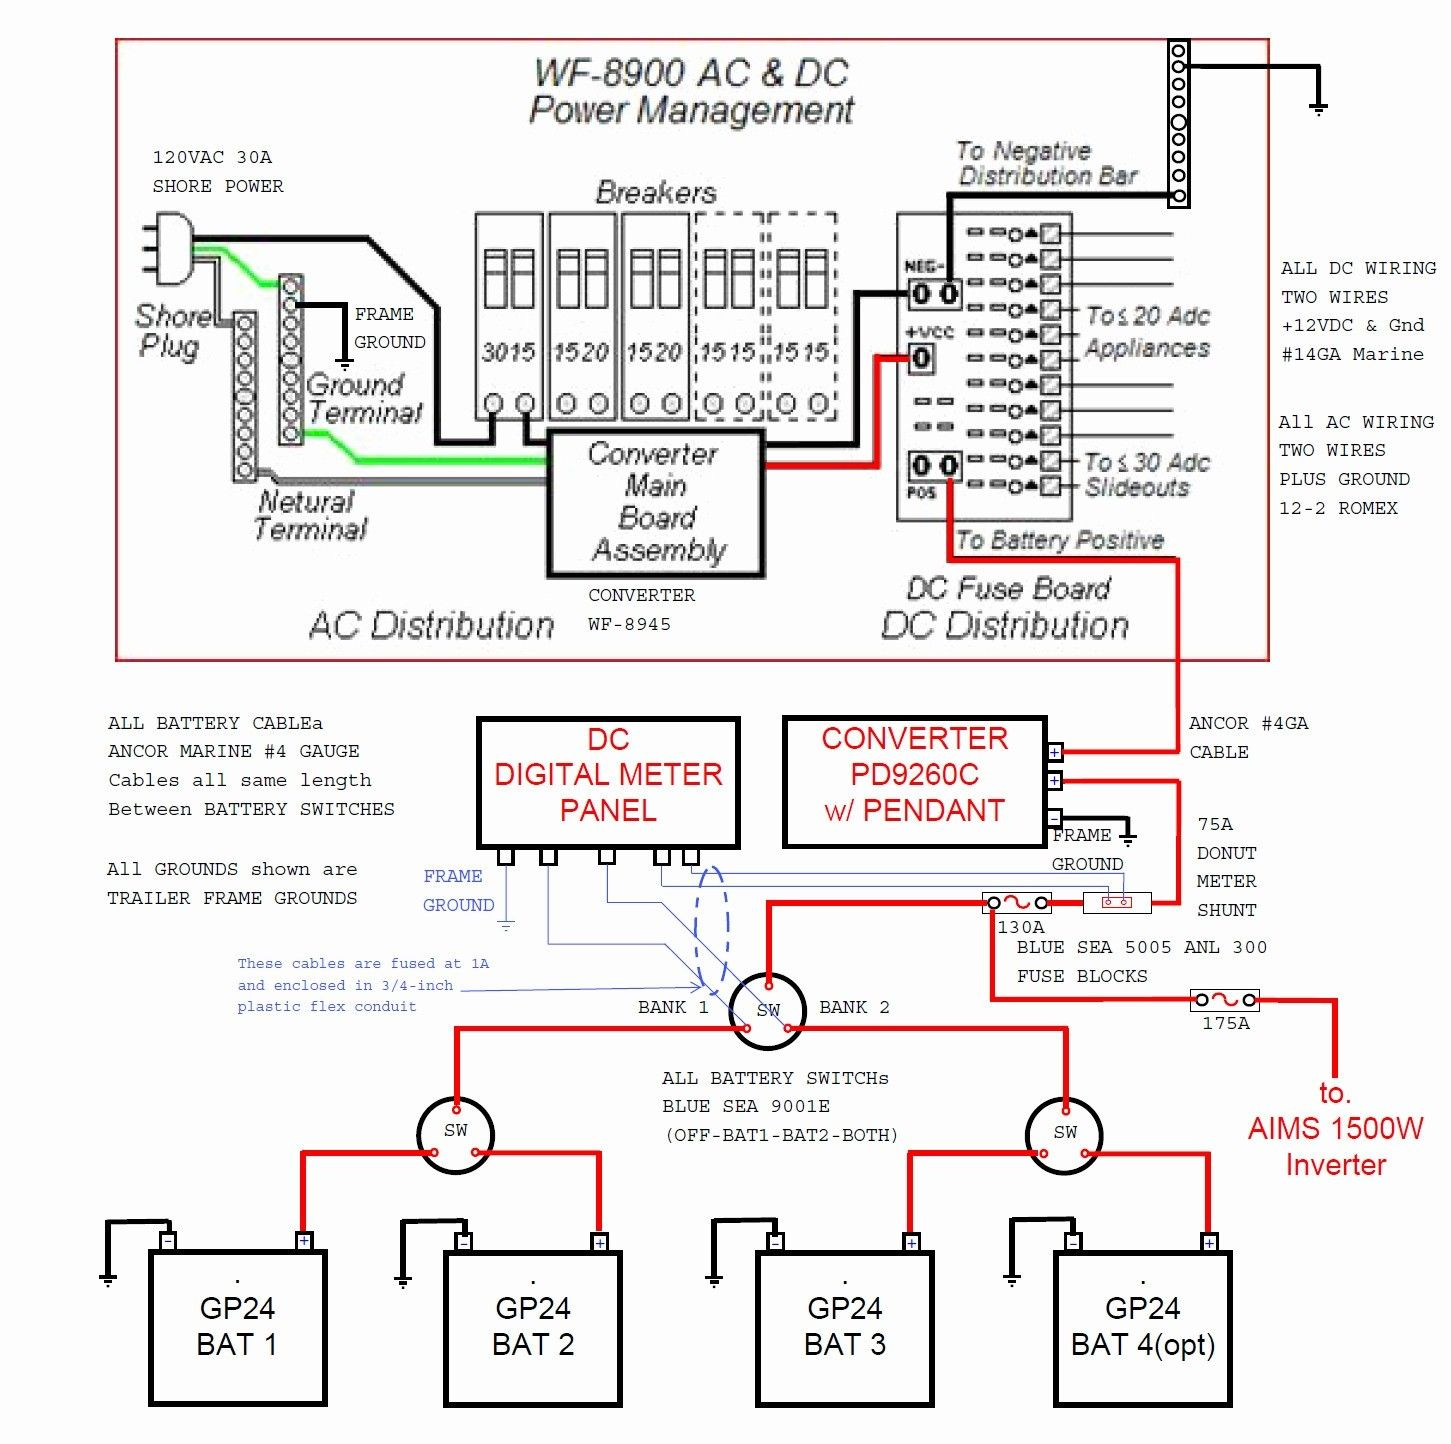 50 Amp Rv Outlet Wiring Diagram in 2020 | Trailer wiring diagram, Electrical  wiring diagram, Wire | Twist Lock Receptacle 30 Amp Shore Power Wiring Diagram |  | Pinterest